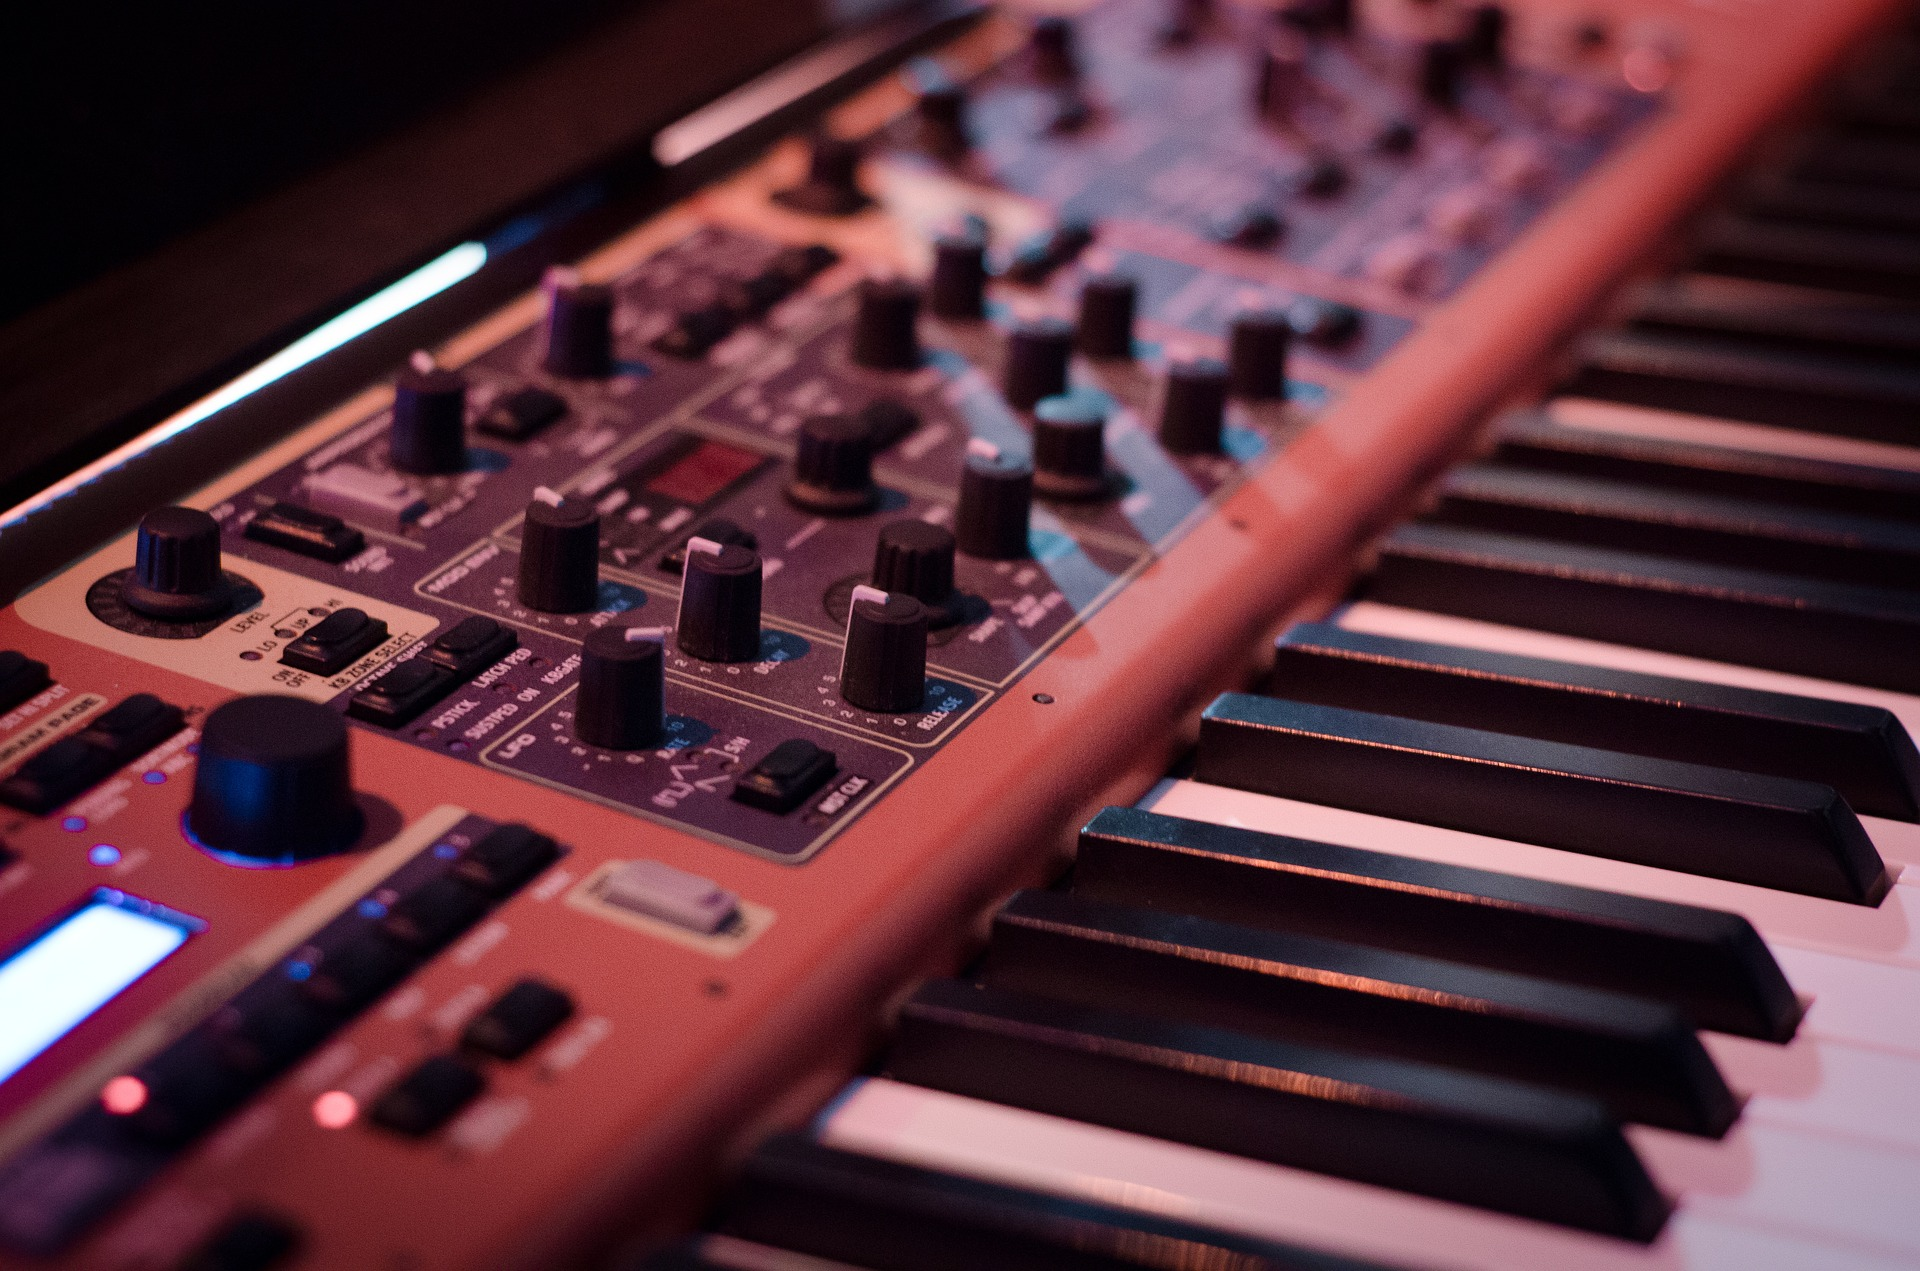 Patrick recording synthesizeraudio service connection